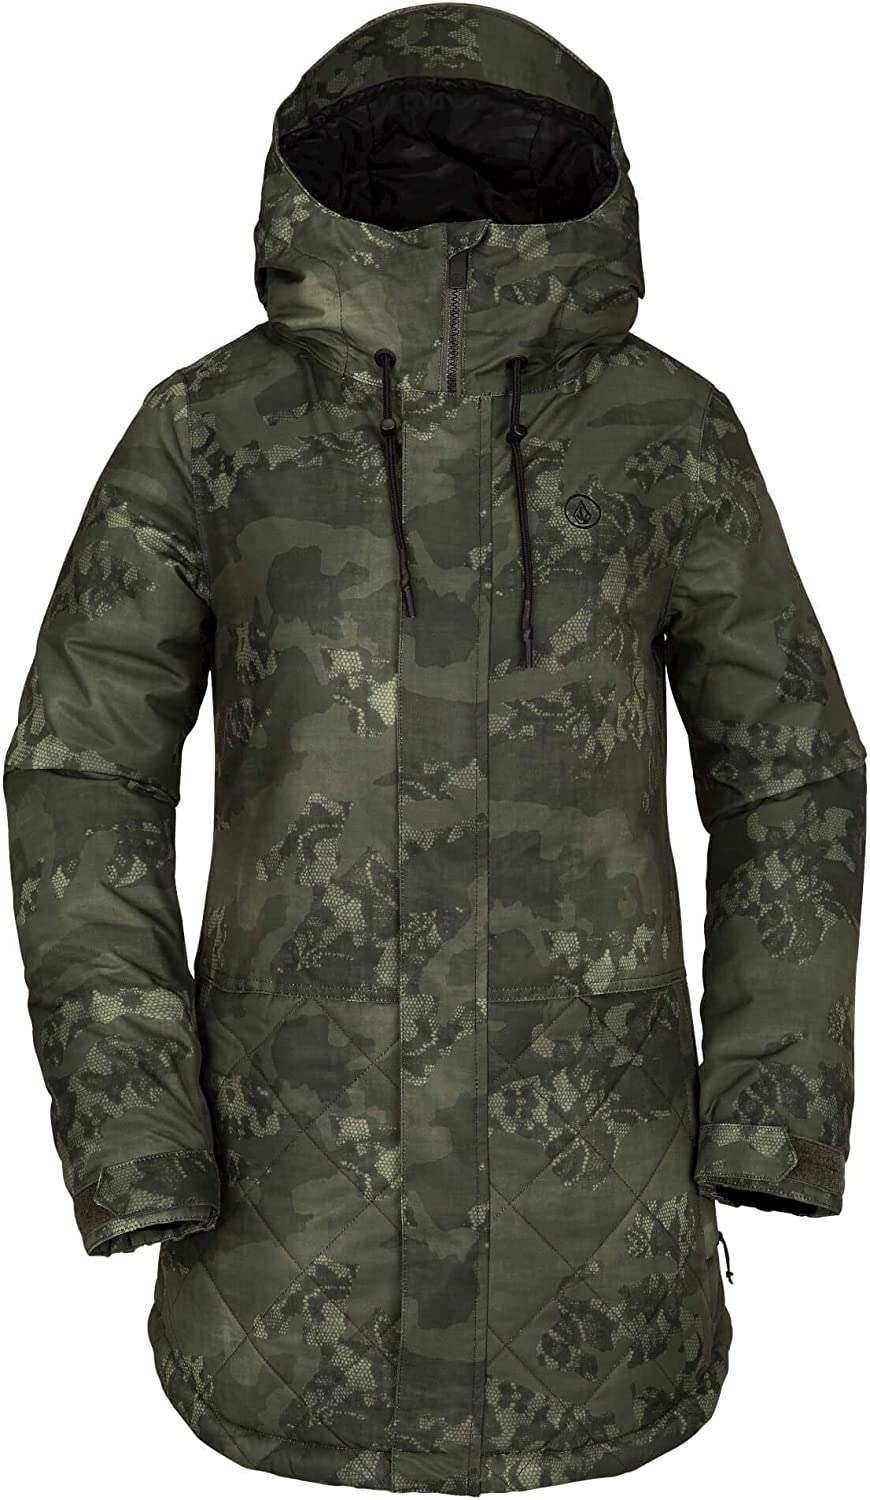 Volcom Women's Winrose Max 41% OFF Snow Insulated Jacket Classic